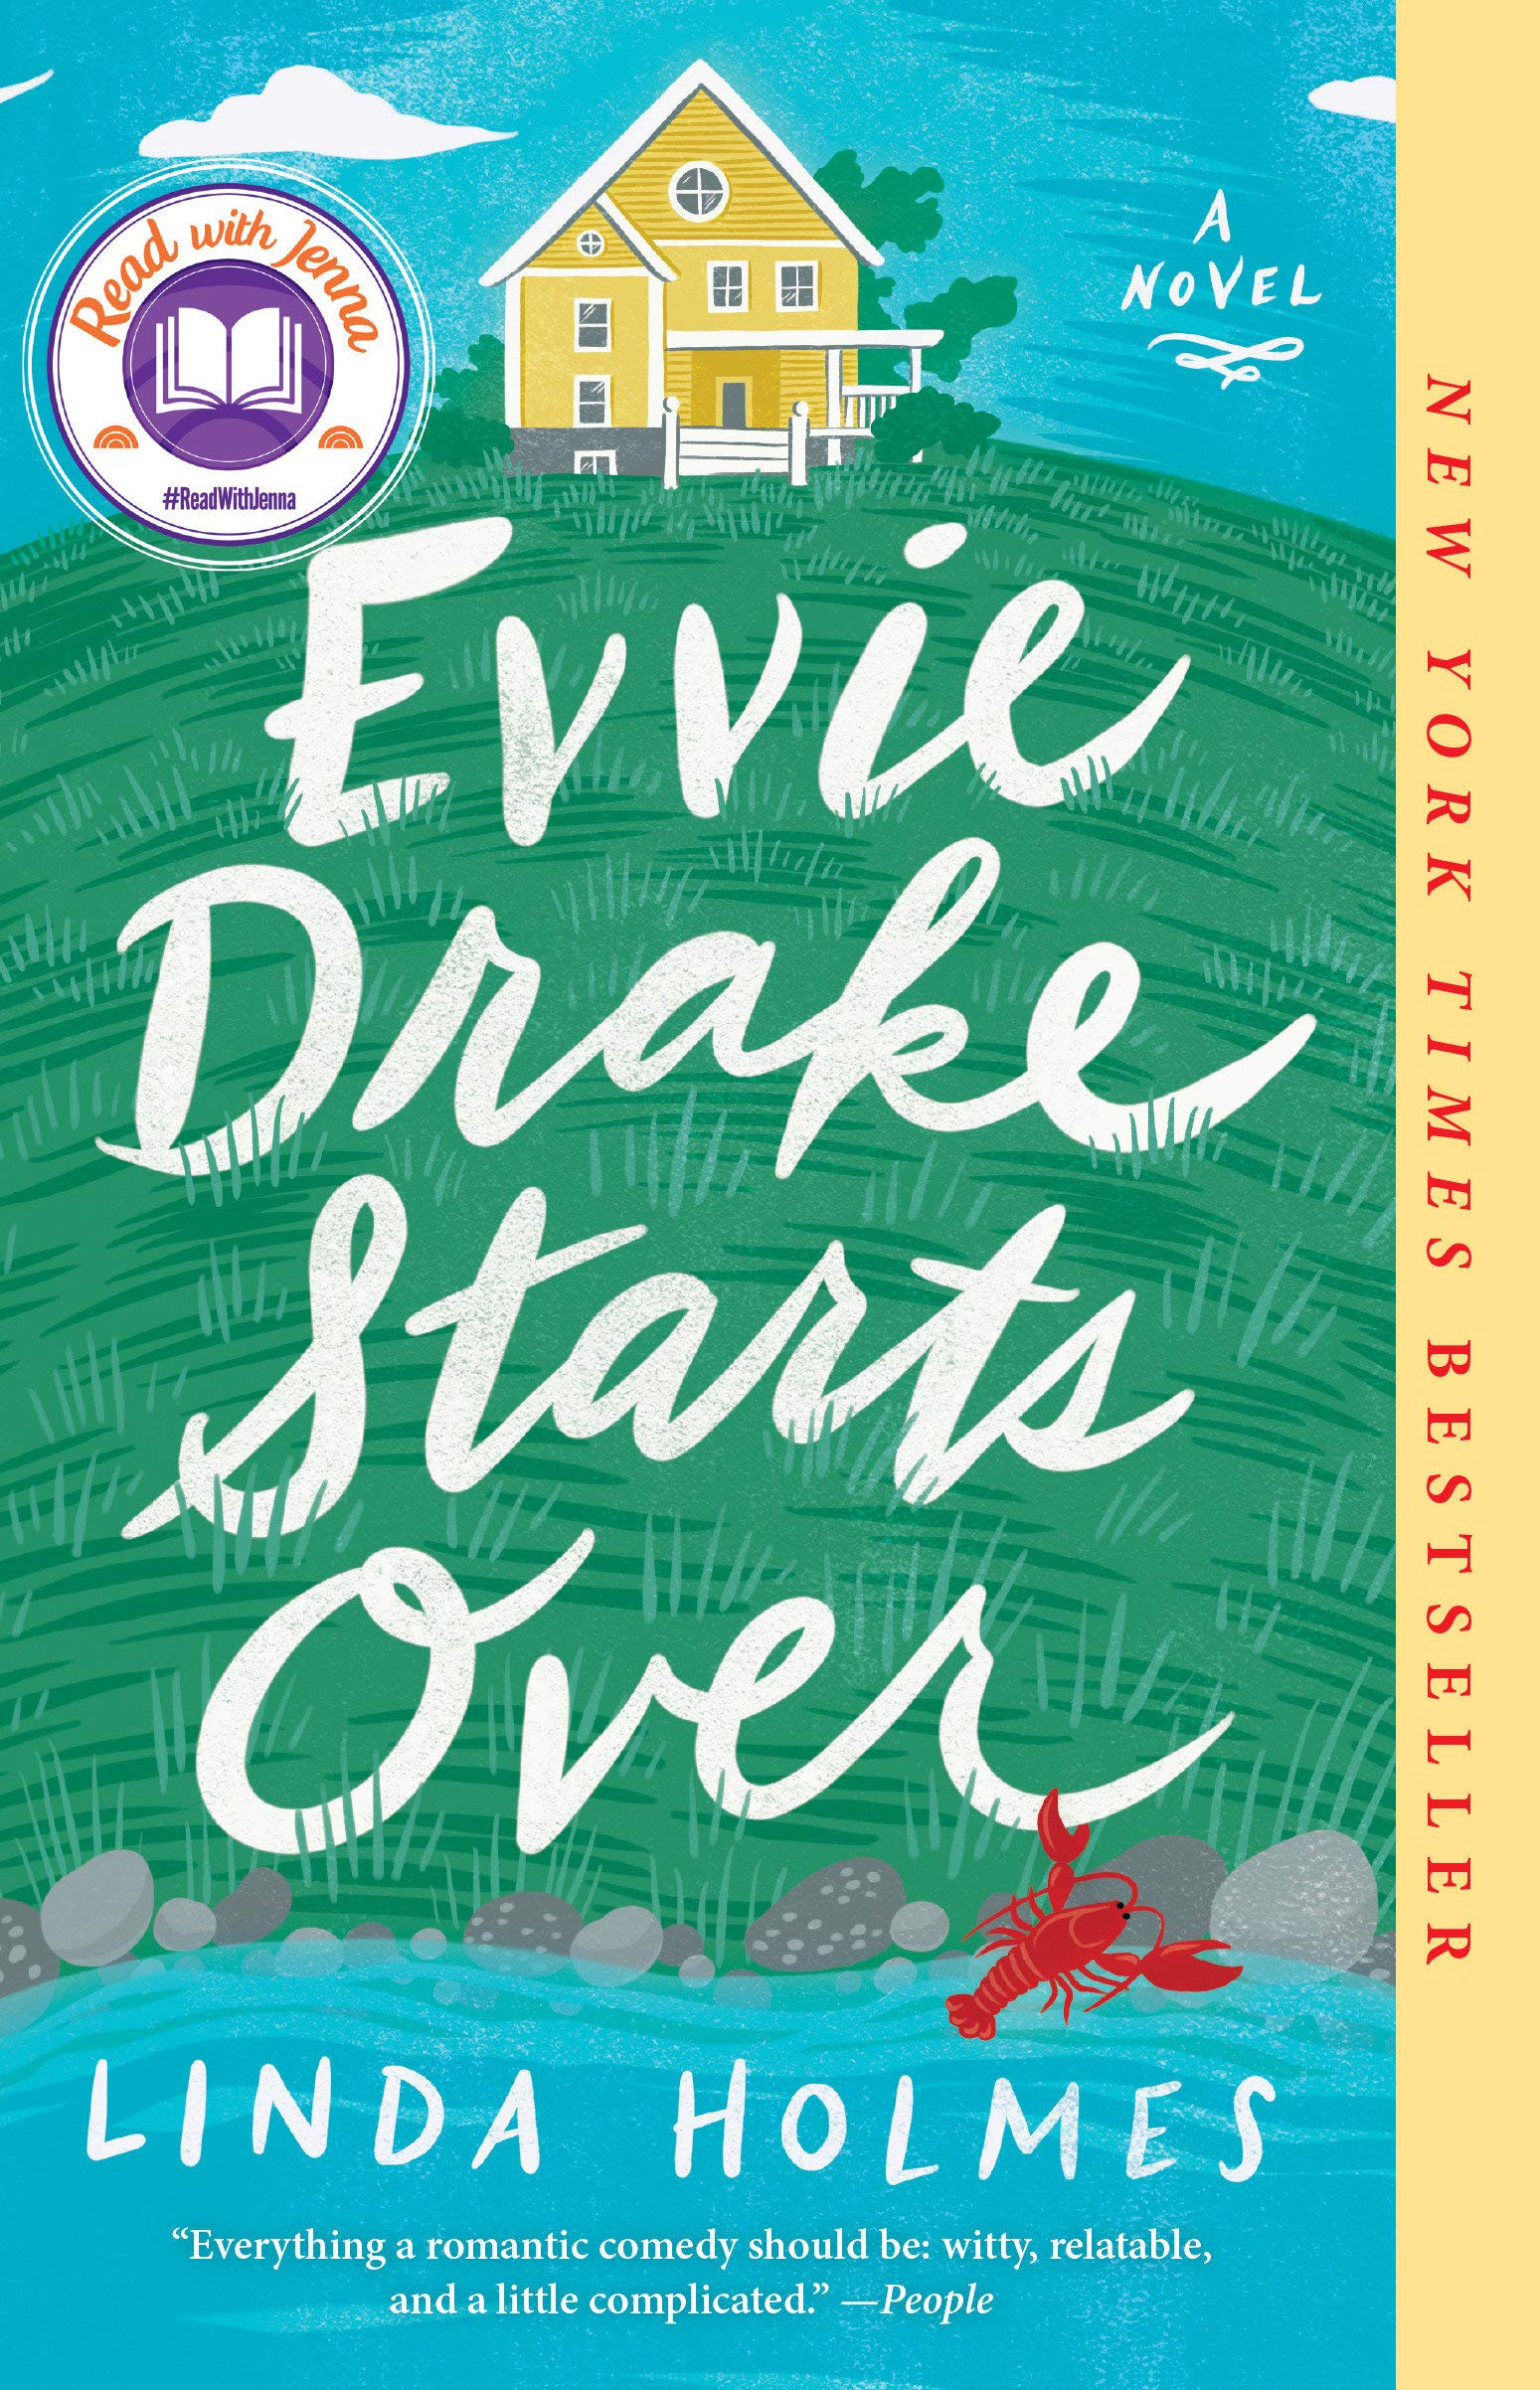 5 Books I Recently Read and Loved | Evvie Drake Starts Over by Linda Holmes